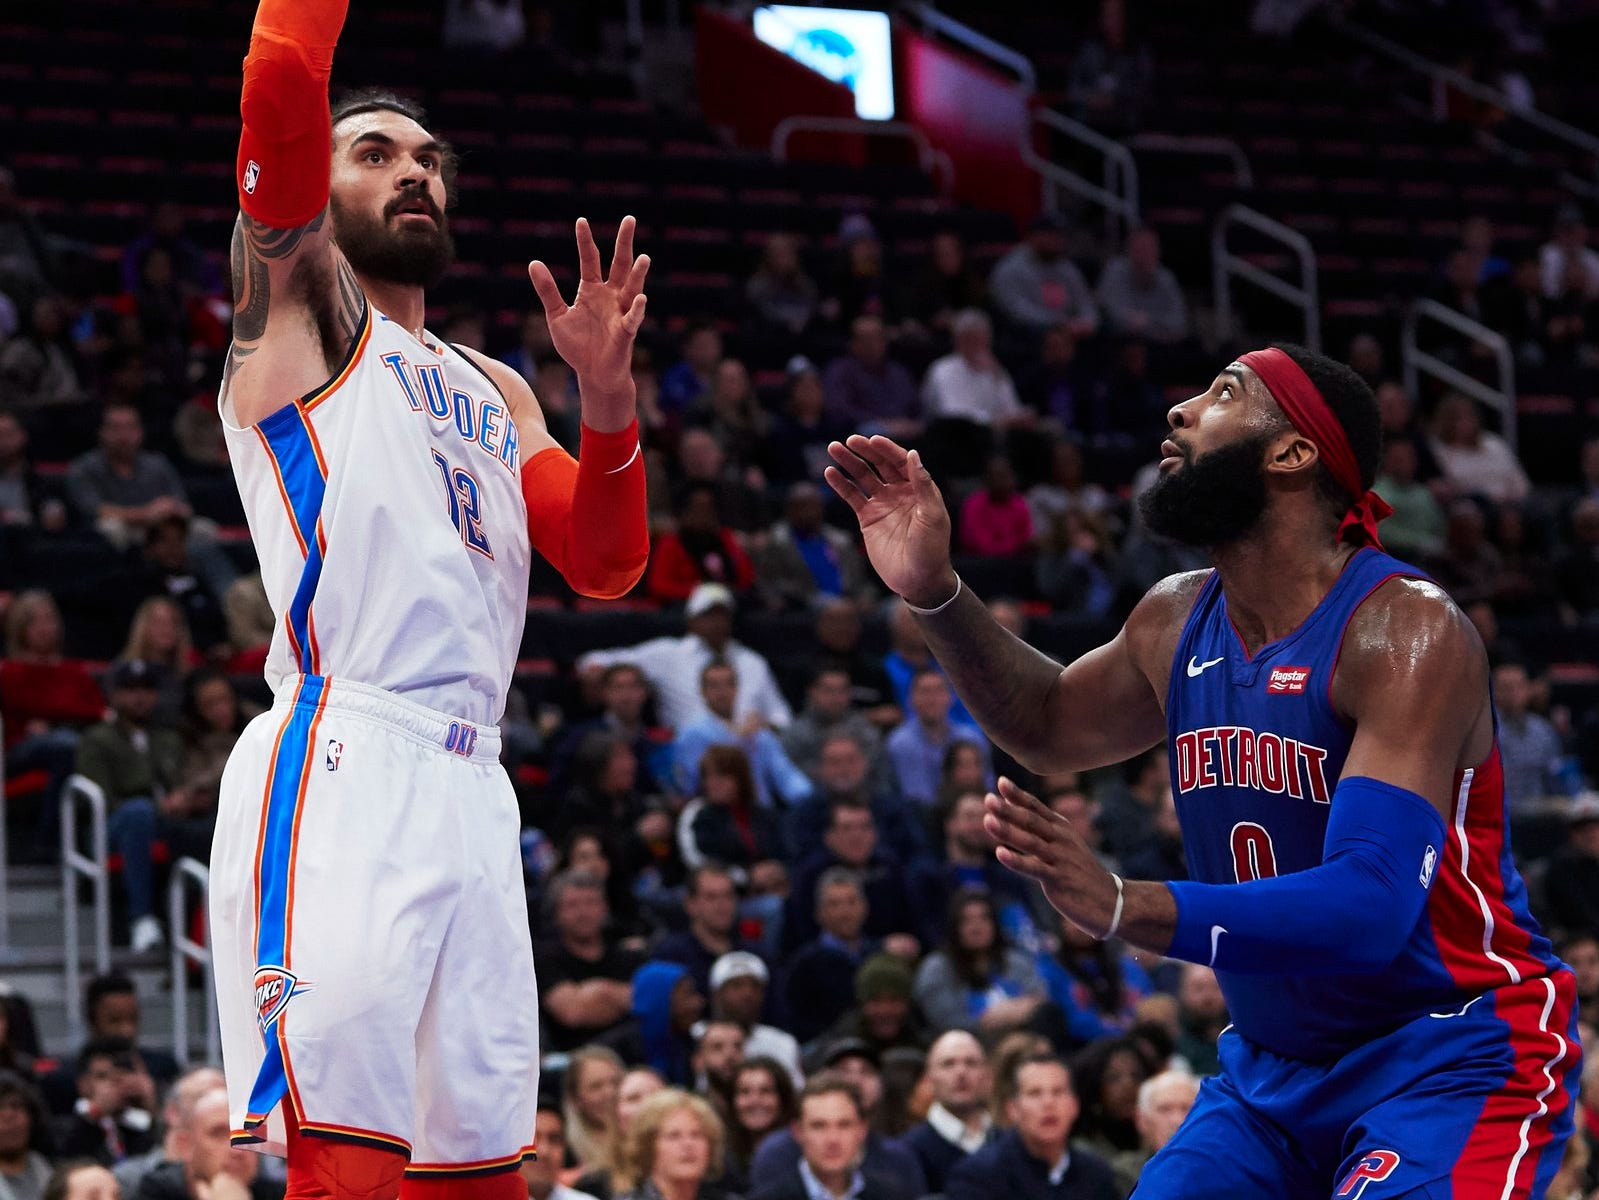 Oklahoma City Thunder center Steven Adams (12) shoots on Detroit Pistons center Andre Drummond (0) in the first half at Little Caesars Arena.